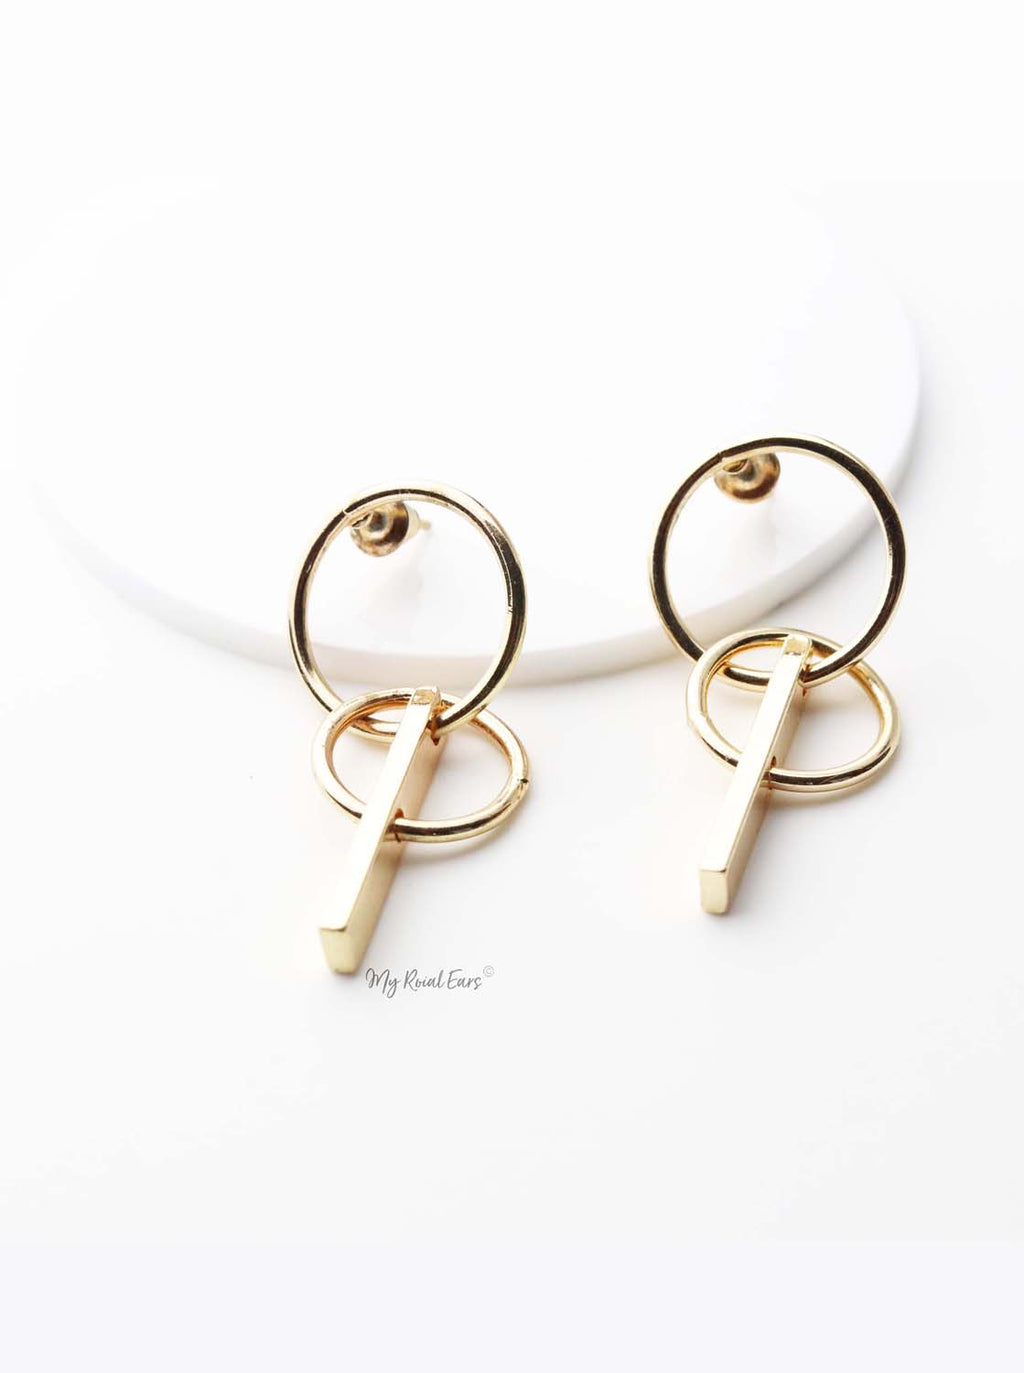 Phoebe- gold plated small double circle earrings - My Roial Ears LTD